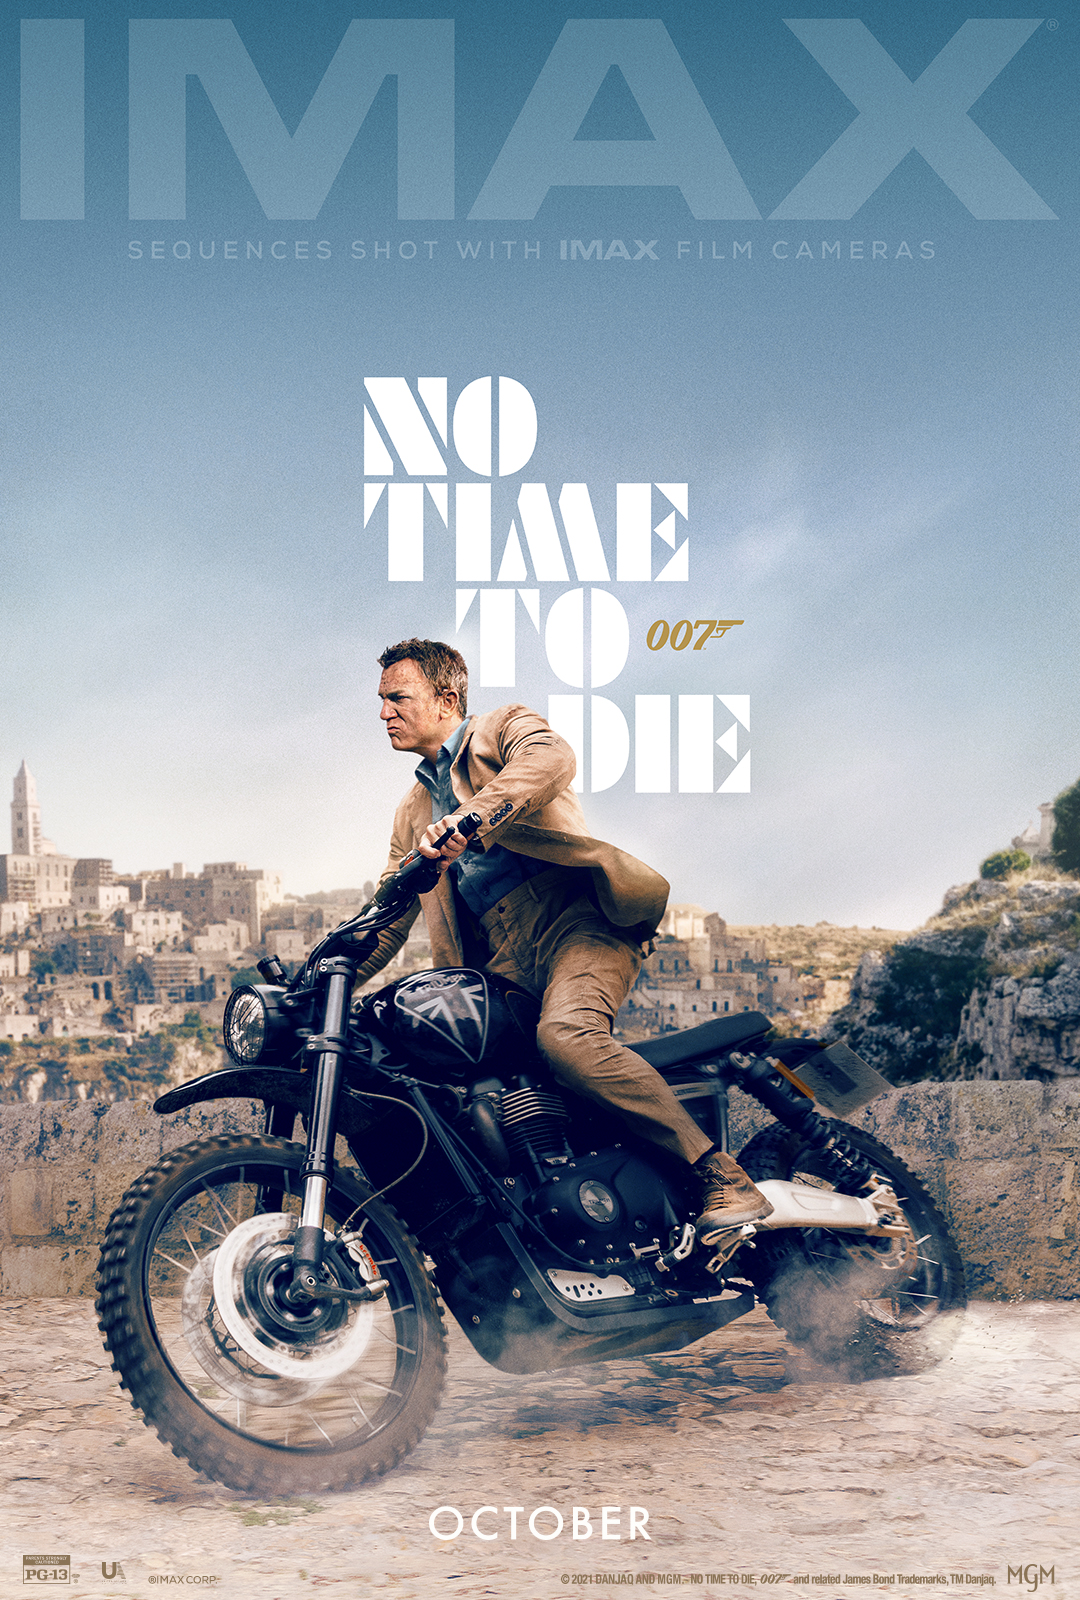 Movie poster image for NO TIME TO DIE in IMAX